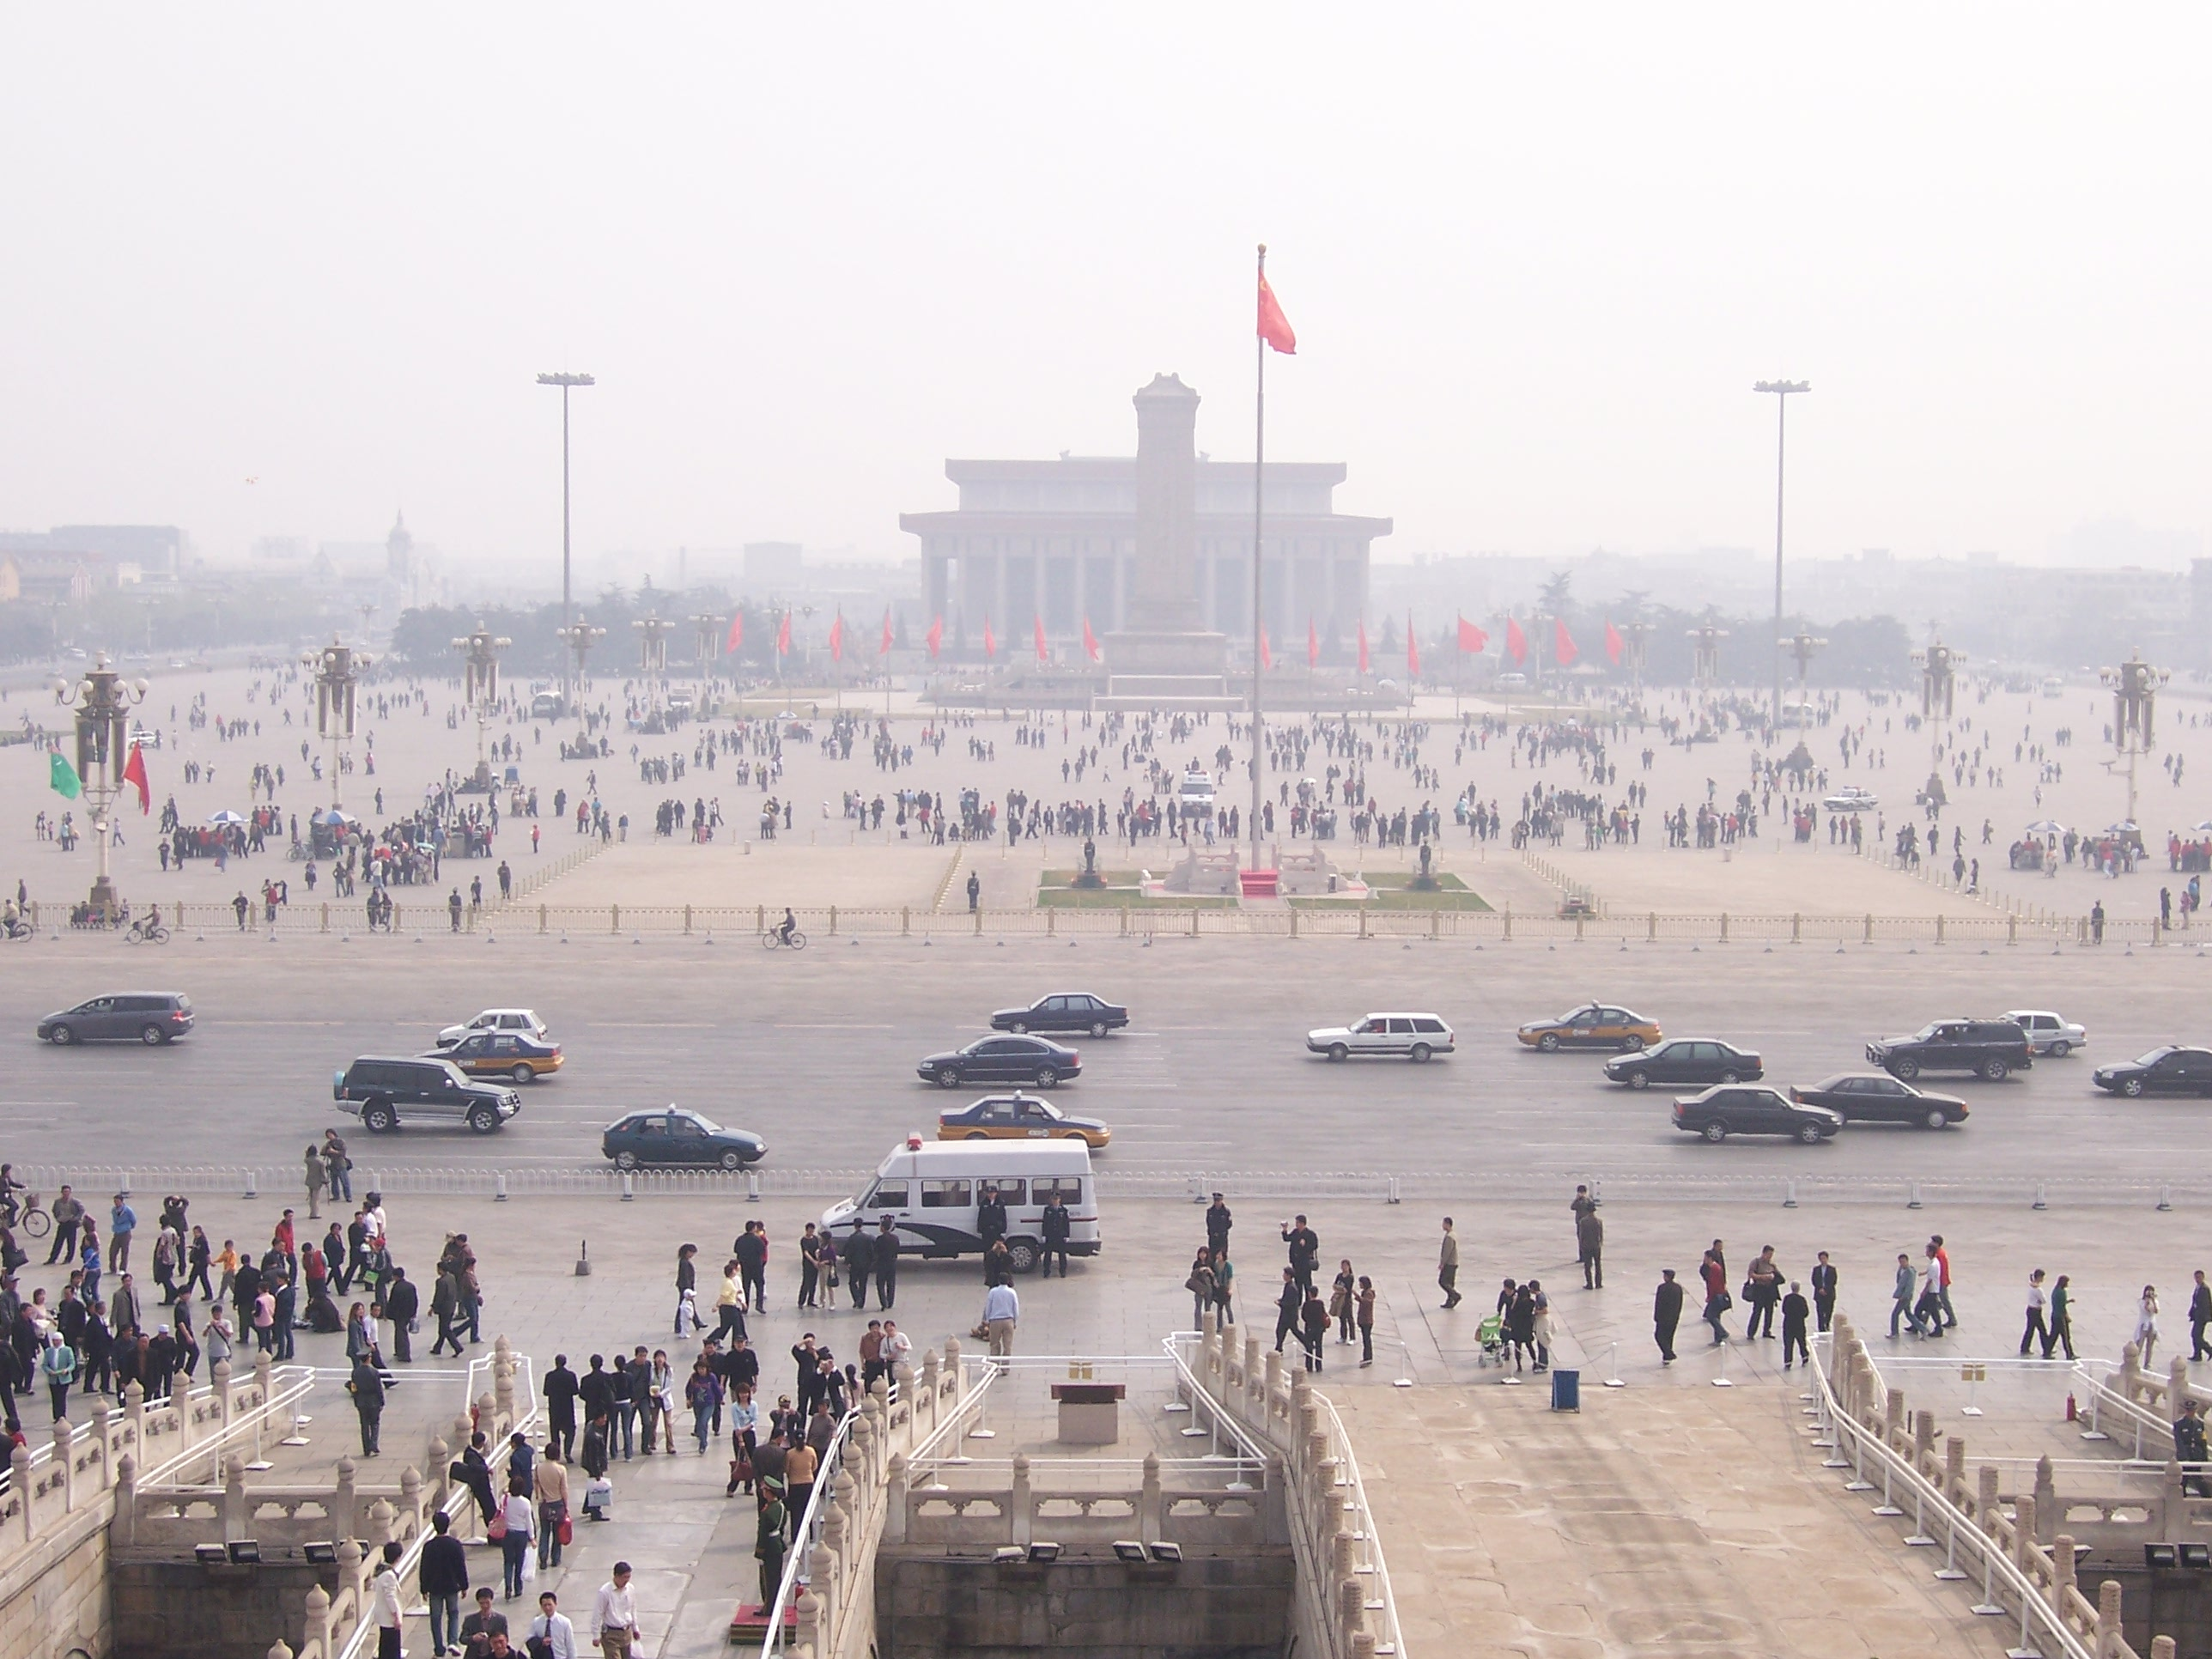 Smog over Tiananmen Square